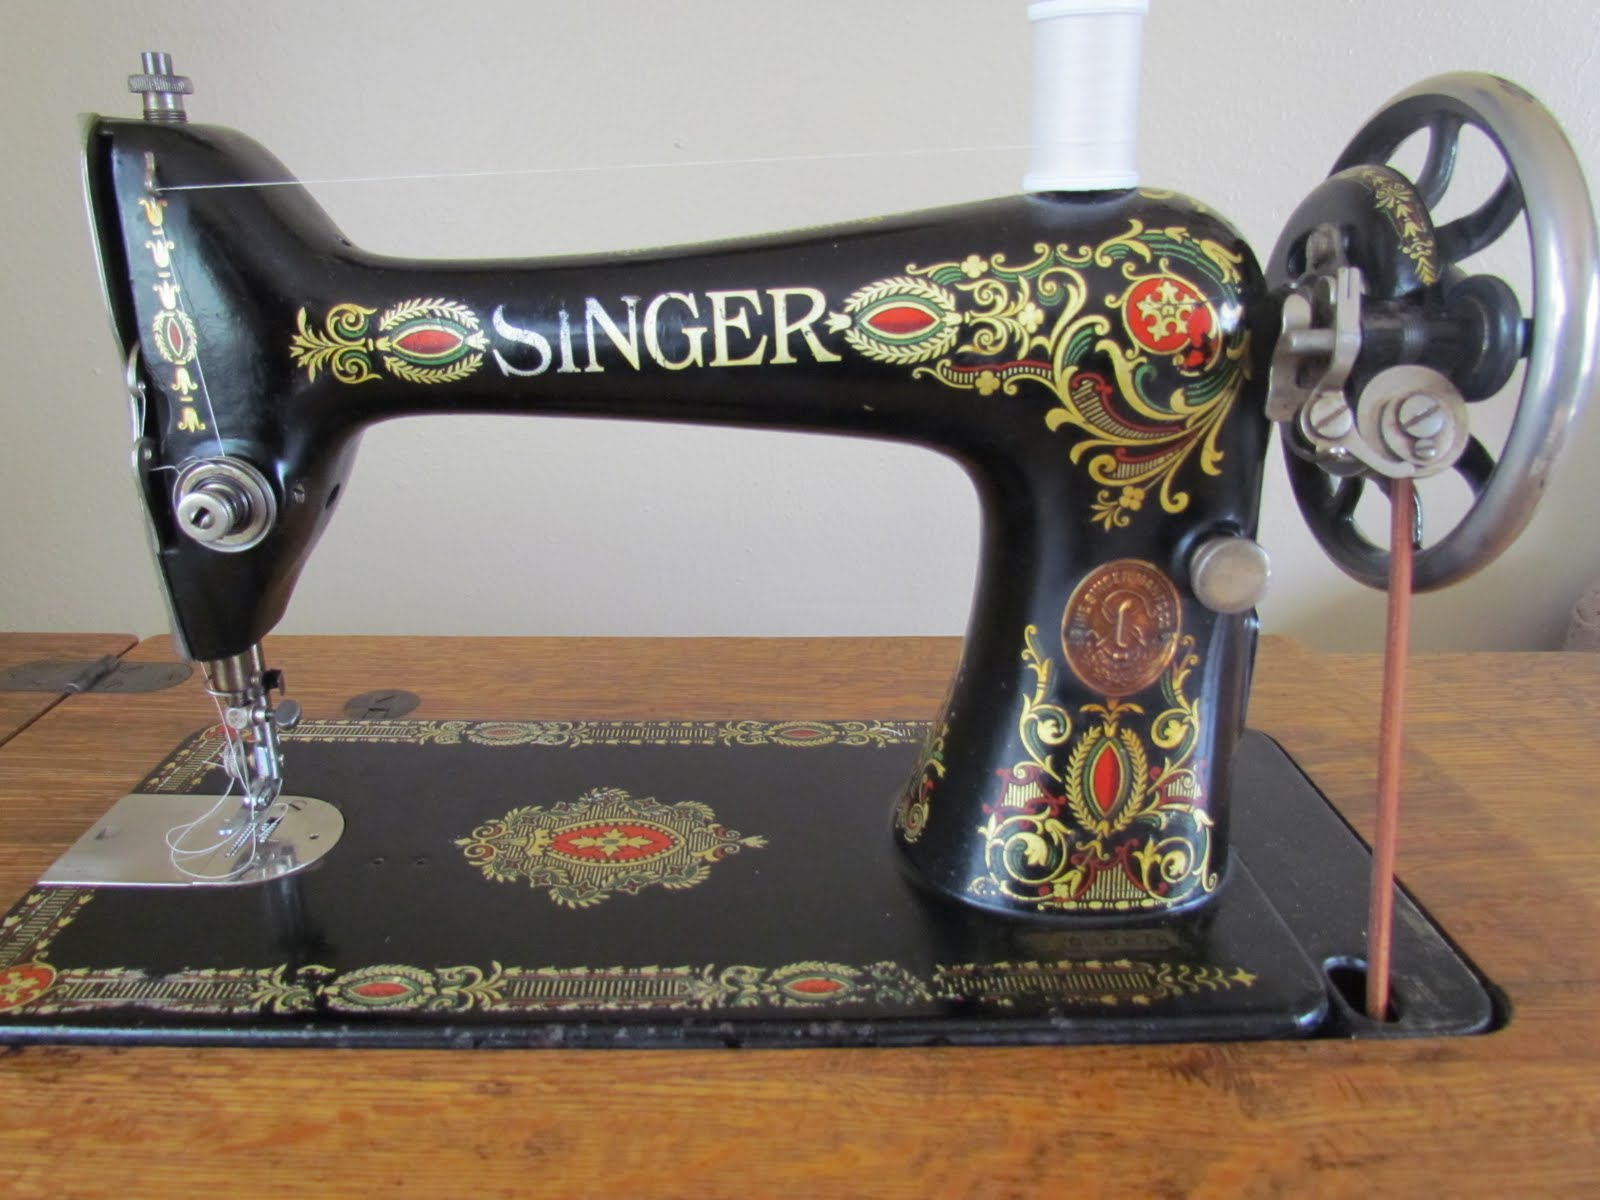 1940 singer sewing machine value